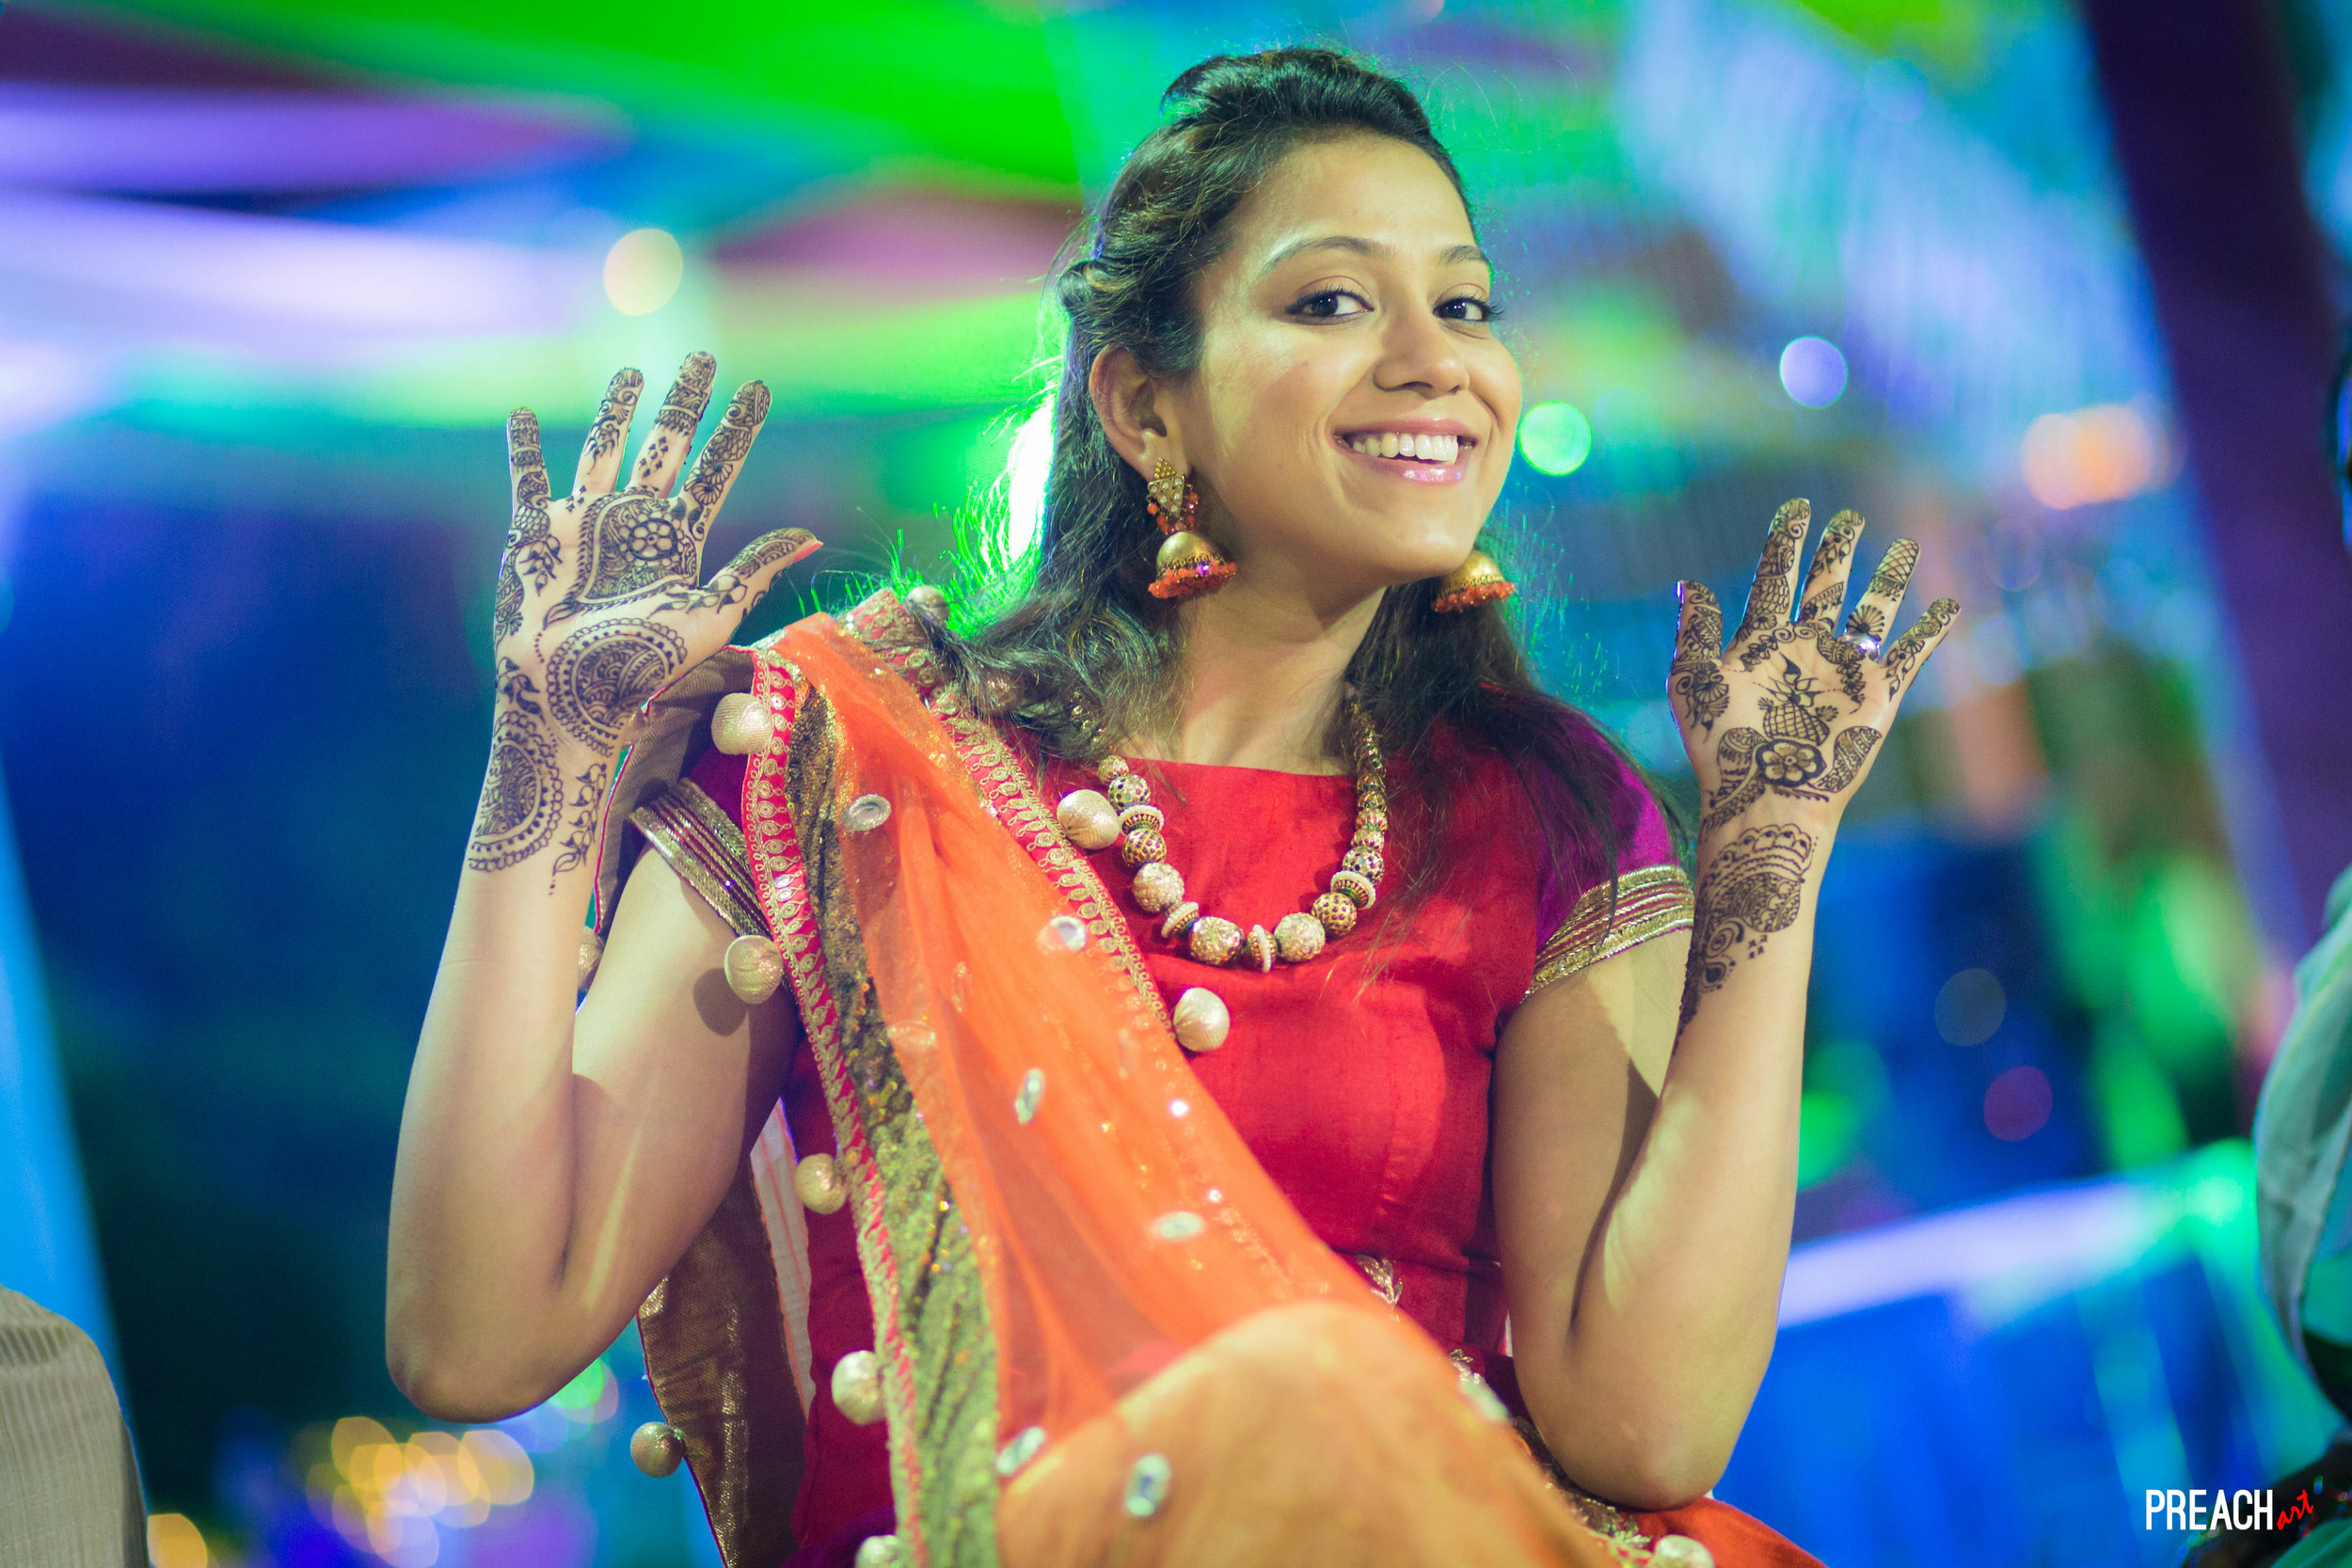 RISHI-ISHITA WEDDING DAY1_PREACH ART-371.jpg